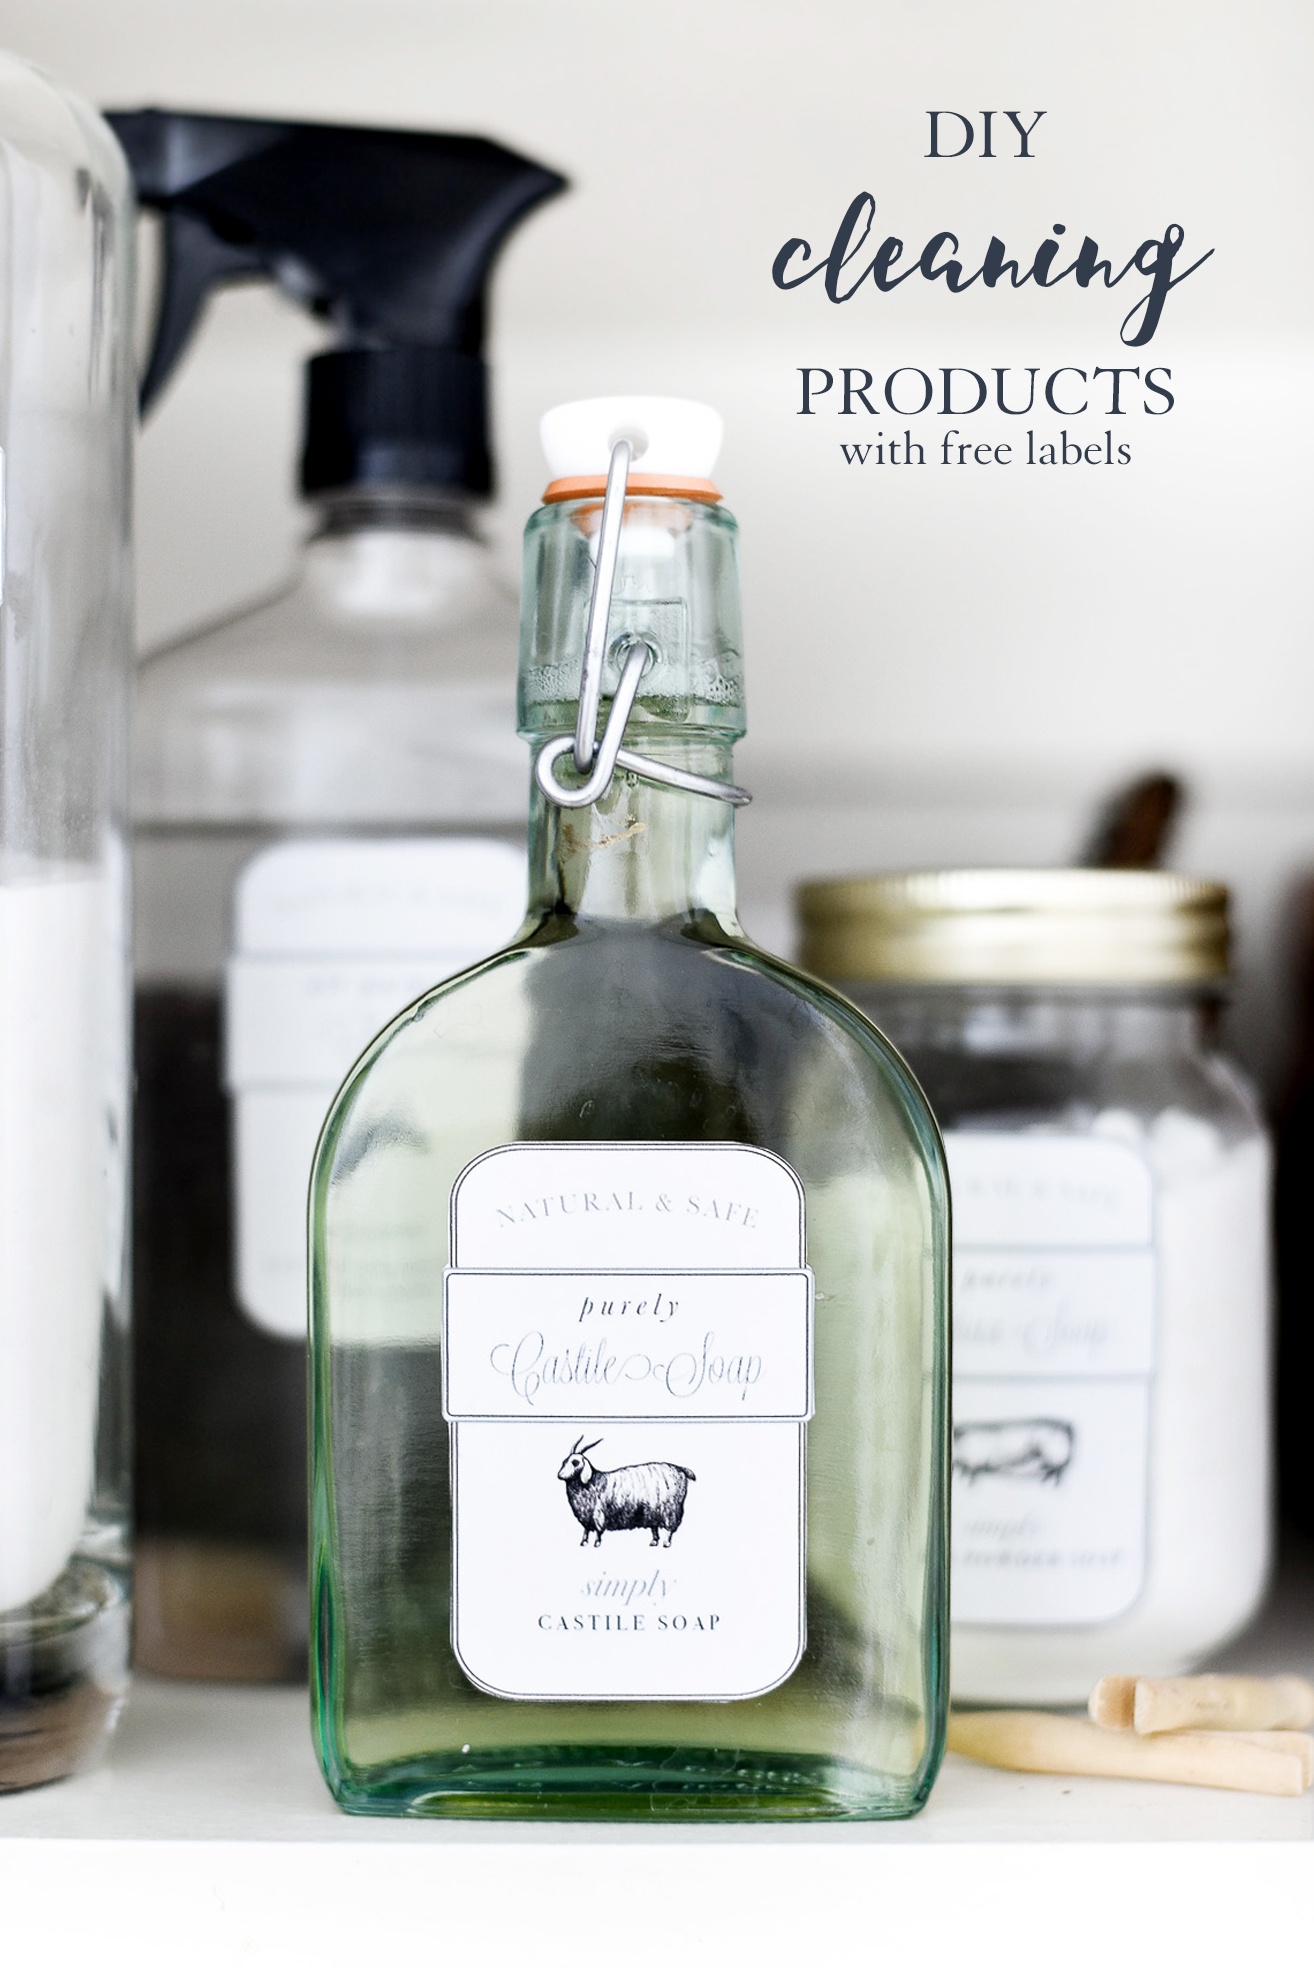 Free labels for making your own inexpensive household cleaning products! boxwoodavenue.com